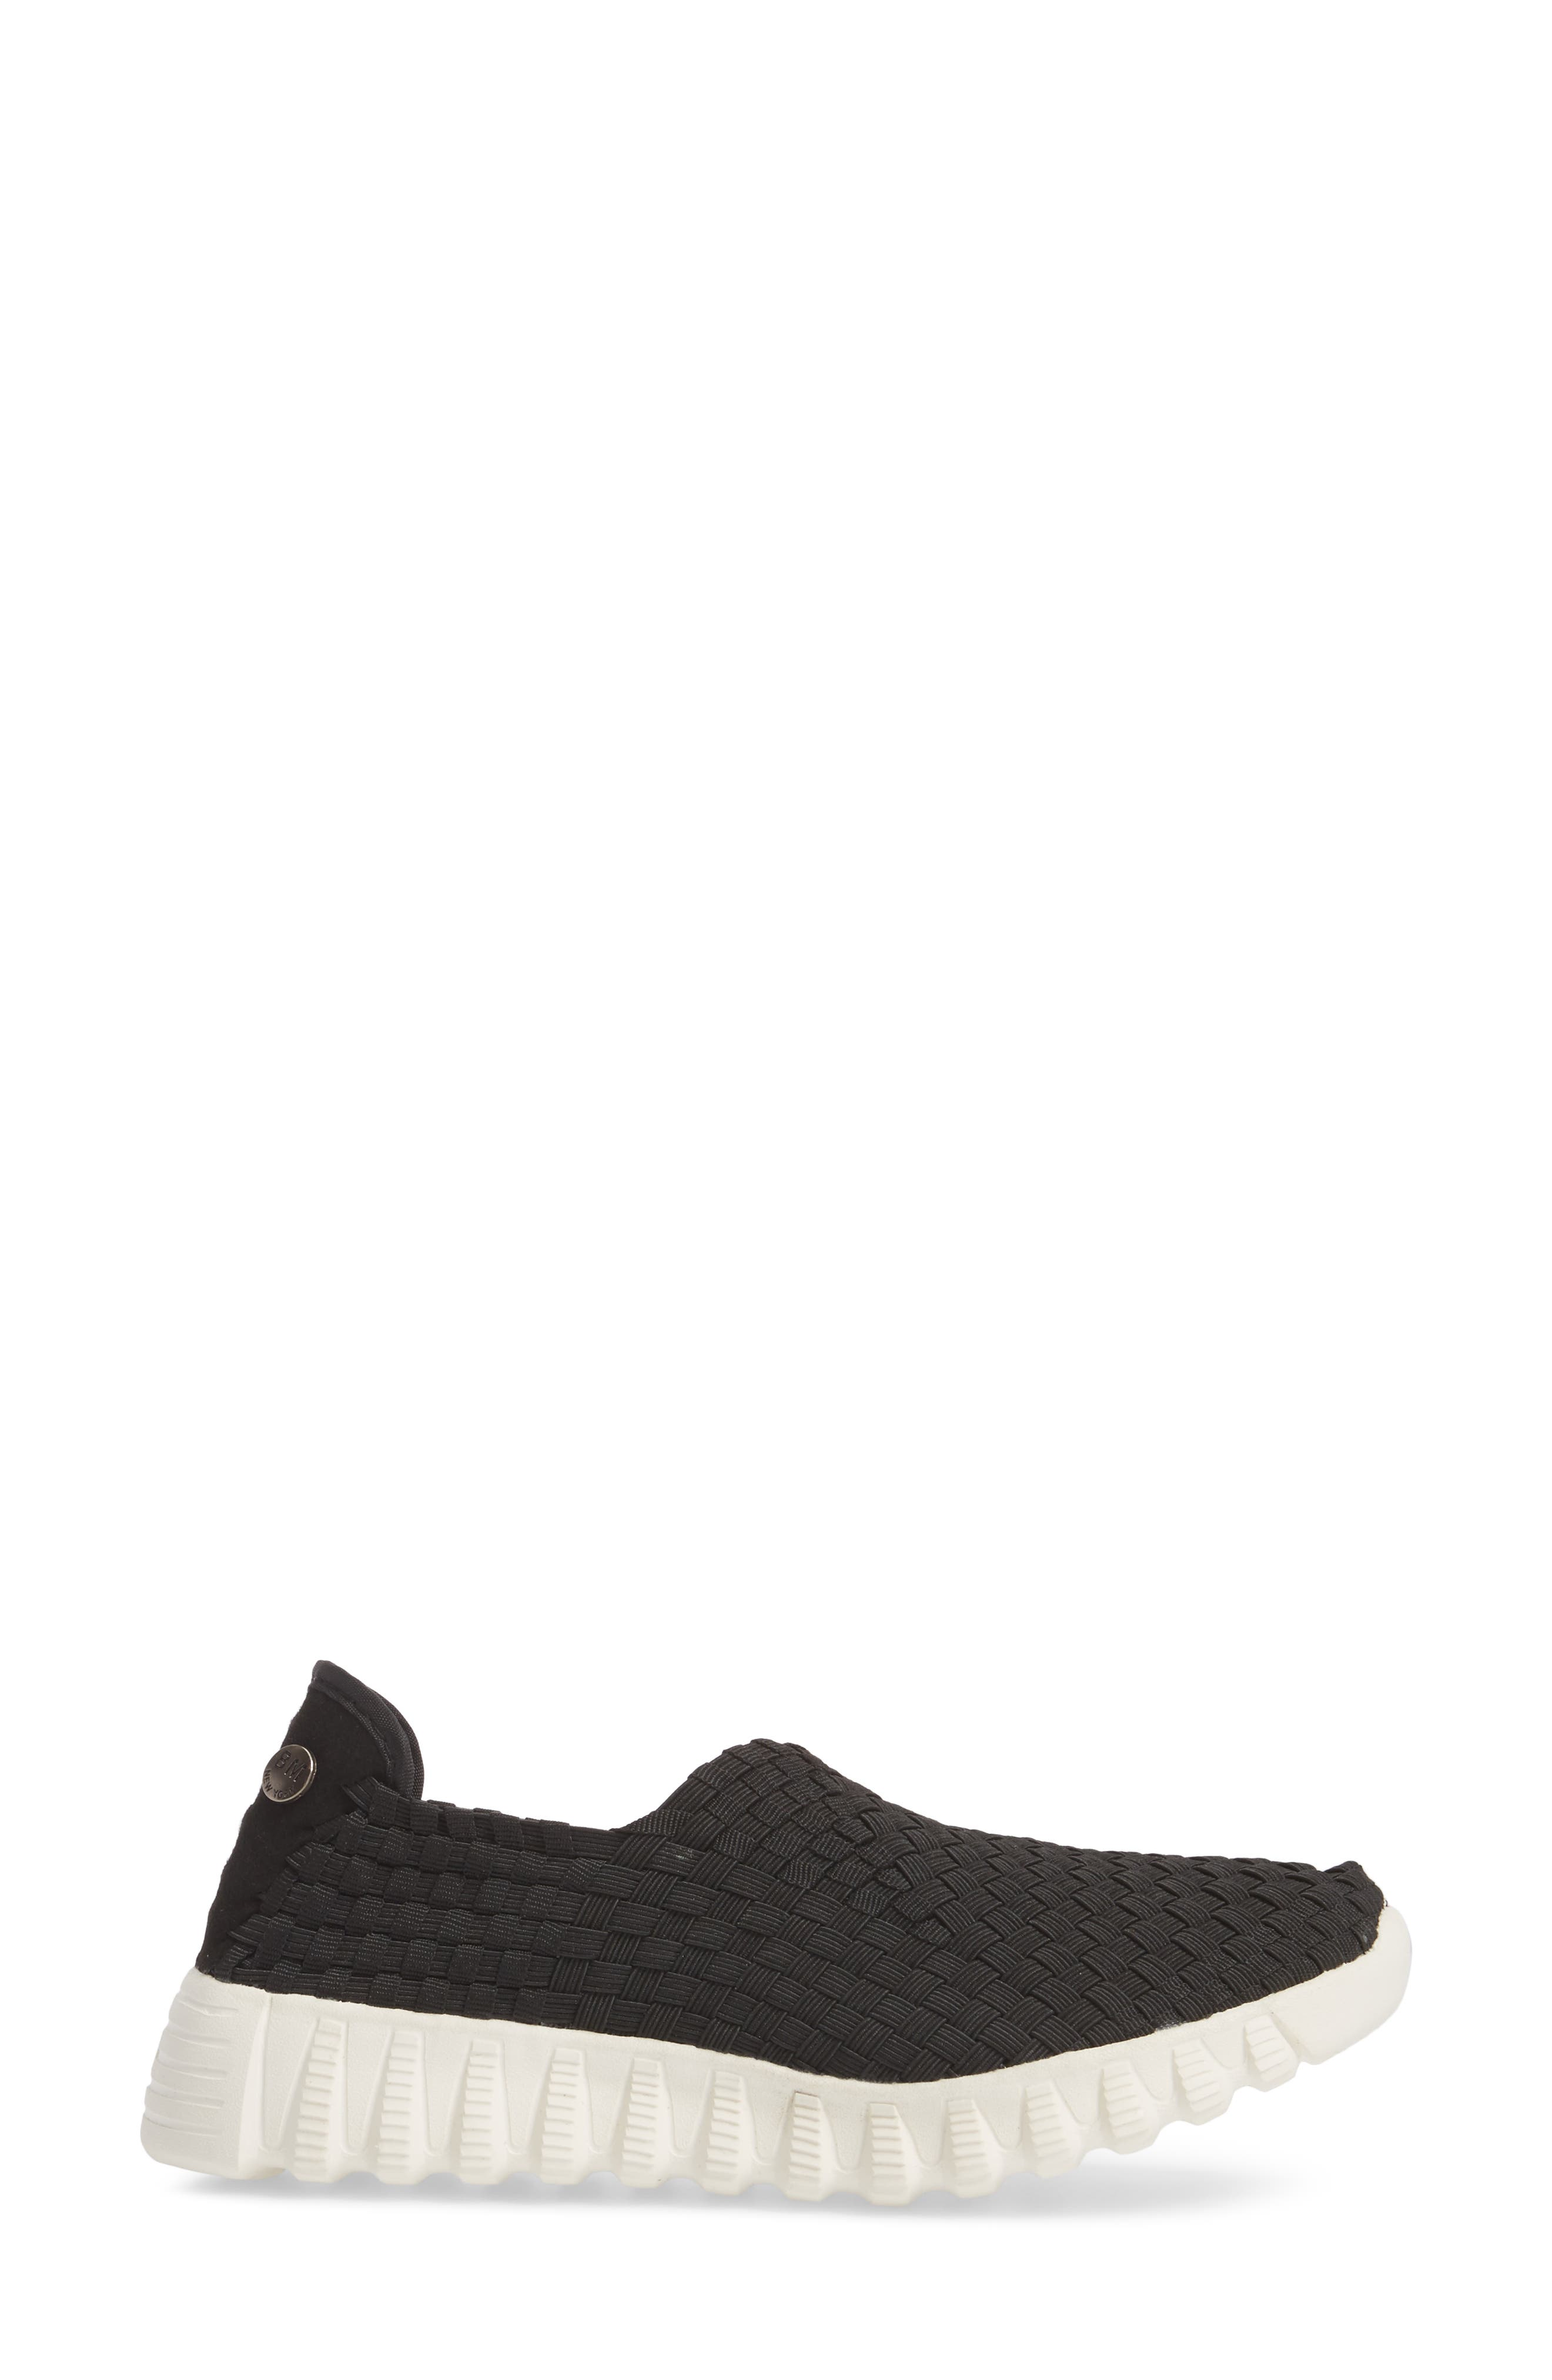 Woven Slip-On Sneaker,                             Alternate thumbnail 3, color,                             BLACK